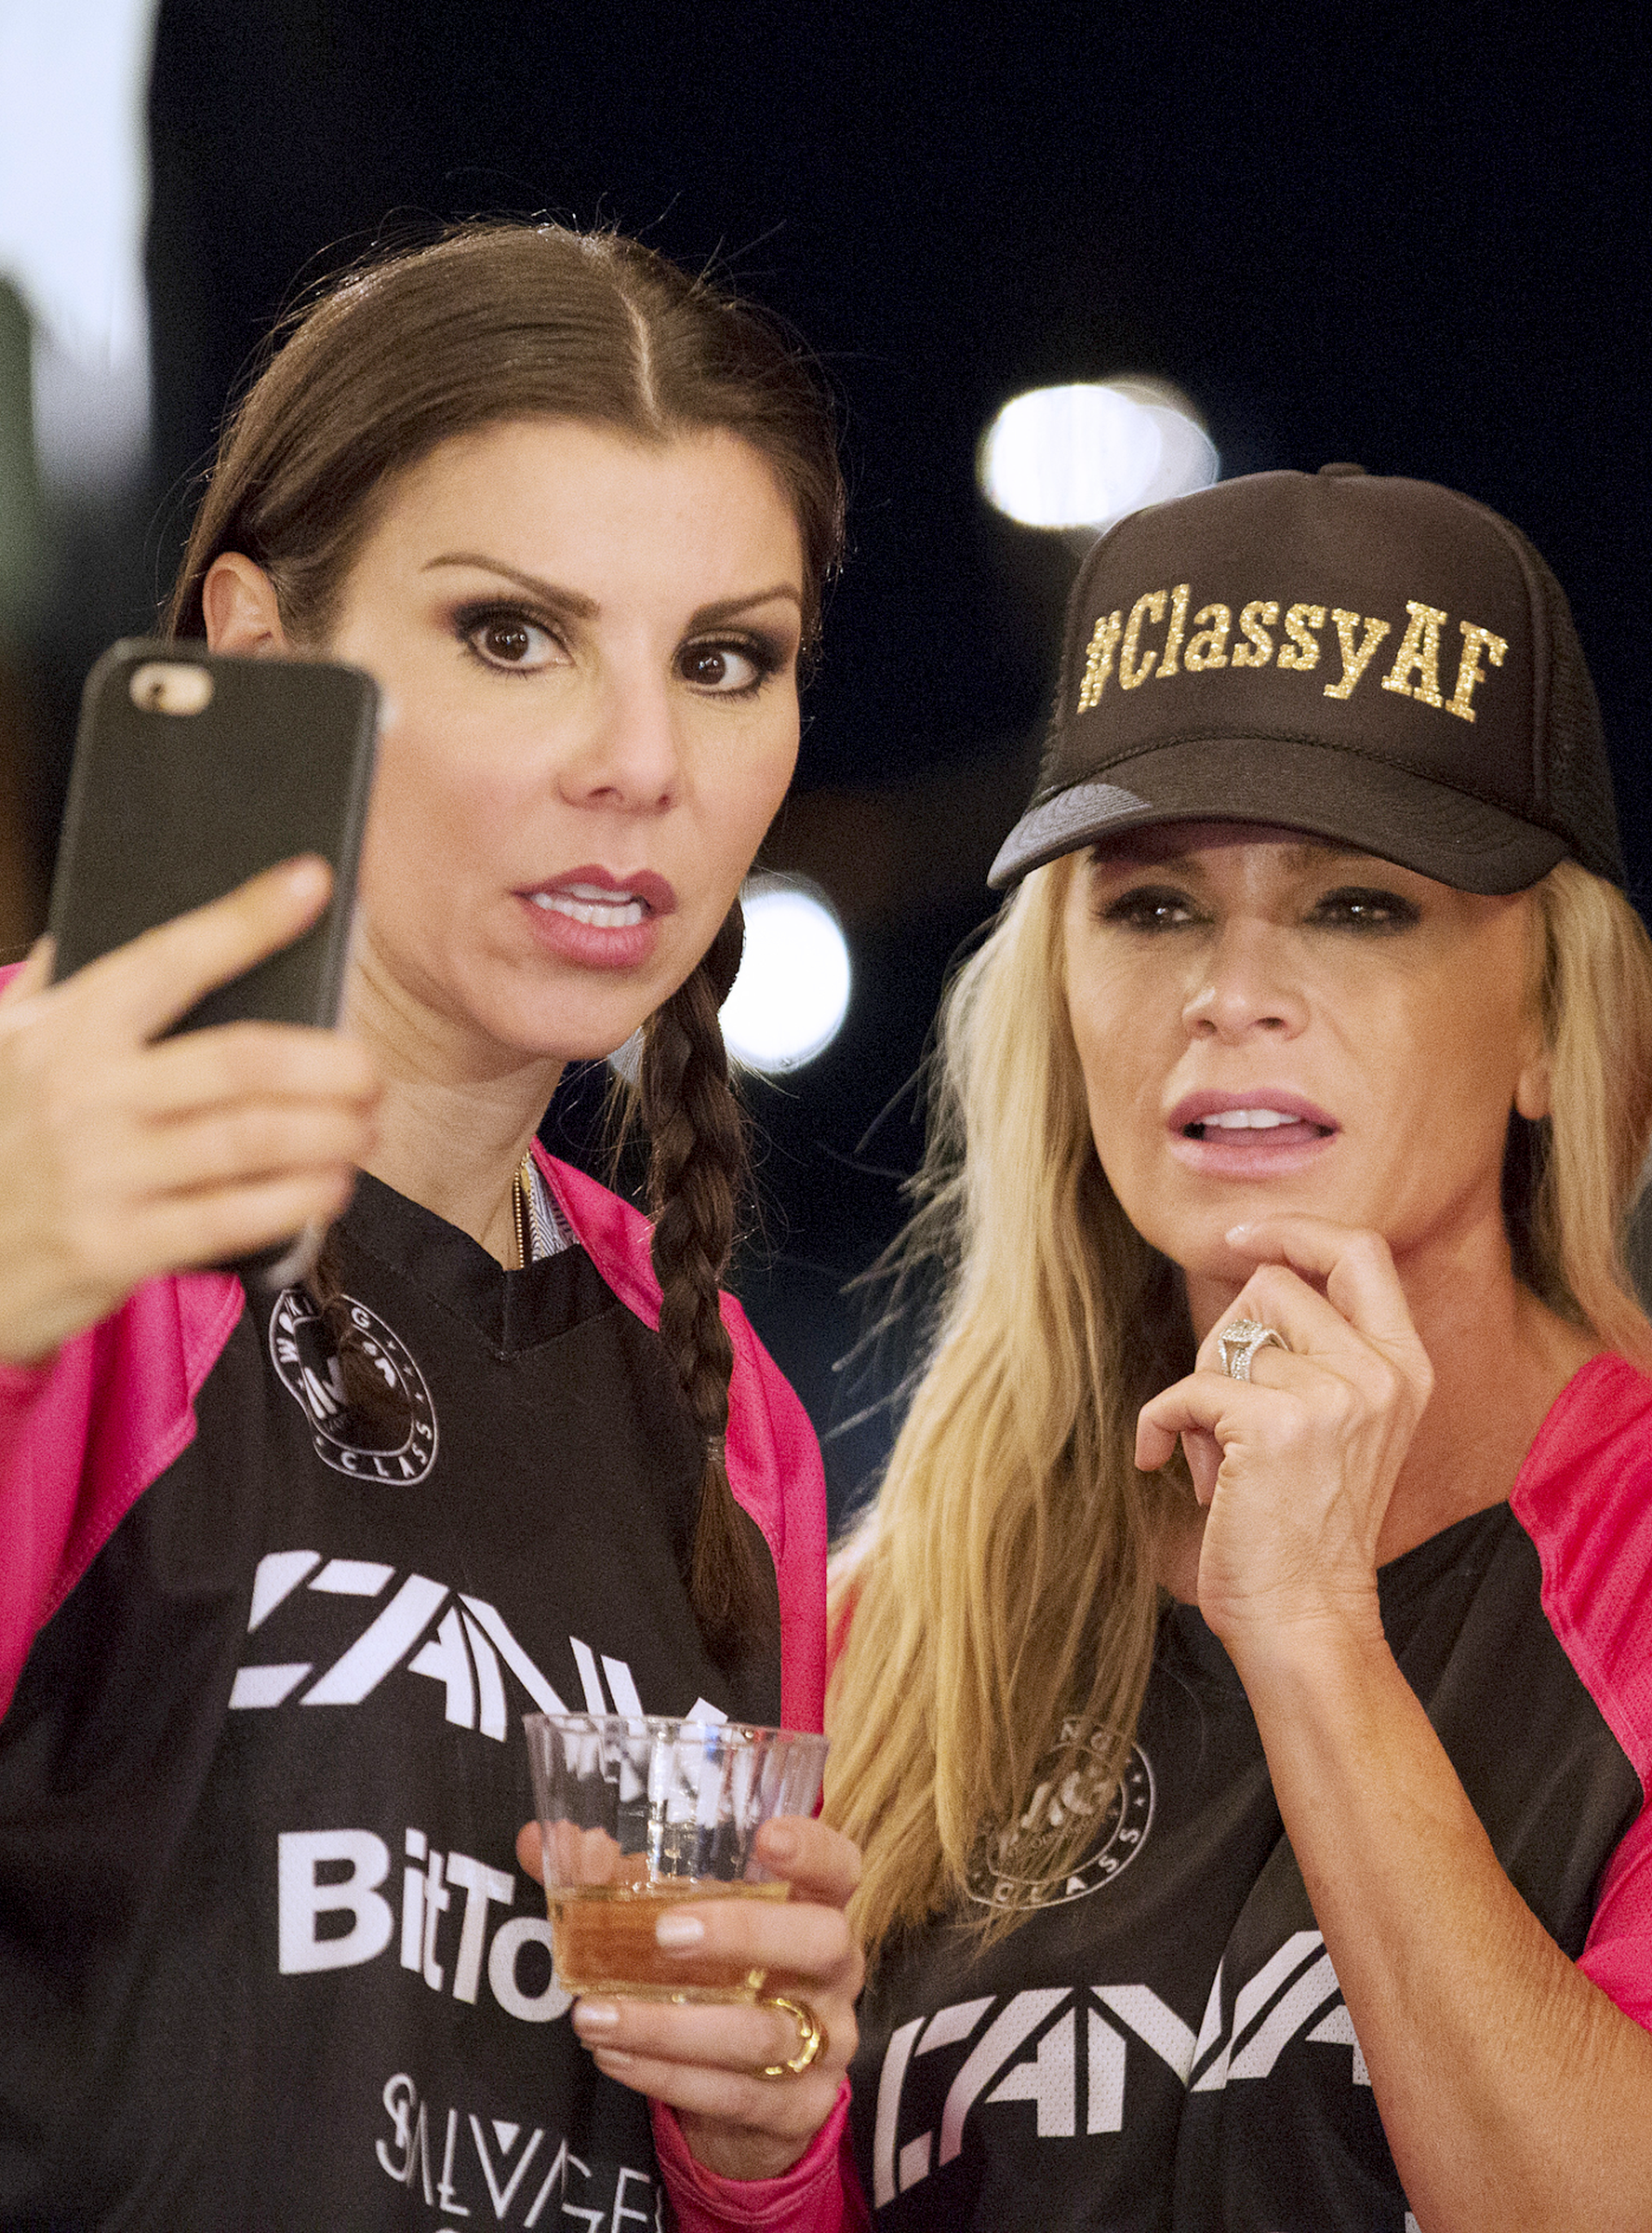 Season 12 Of The Real Housewives Of Orange County Has A New Housewife But The Same Old Insults http://r29.co/2qQSB8C